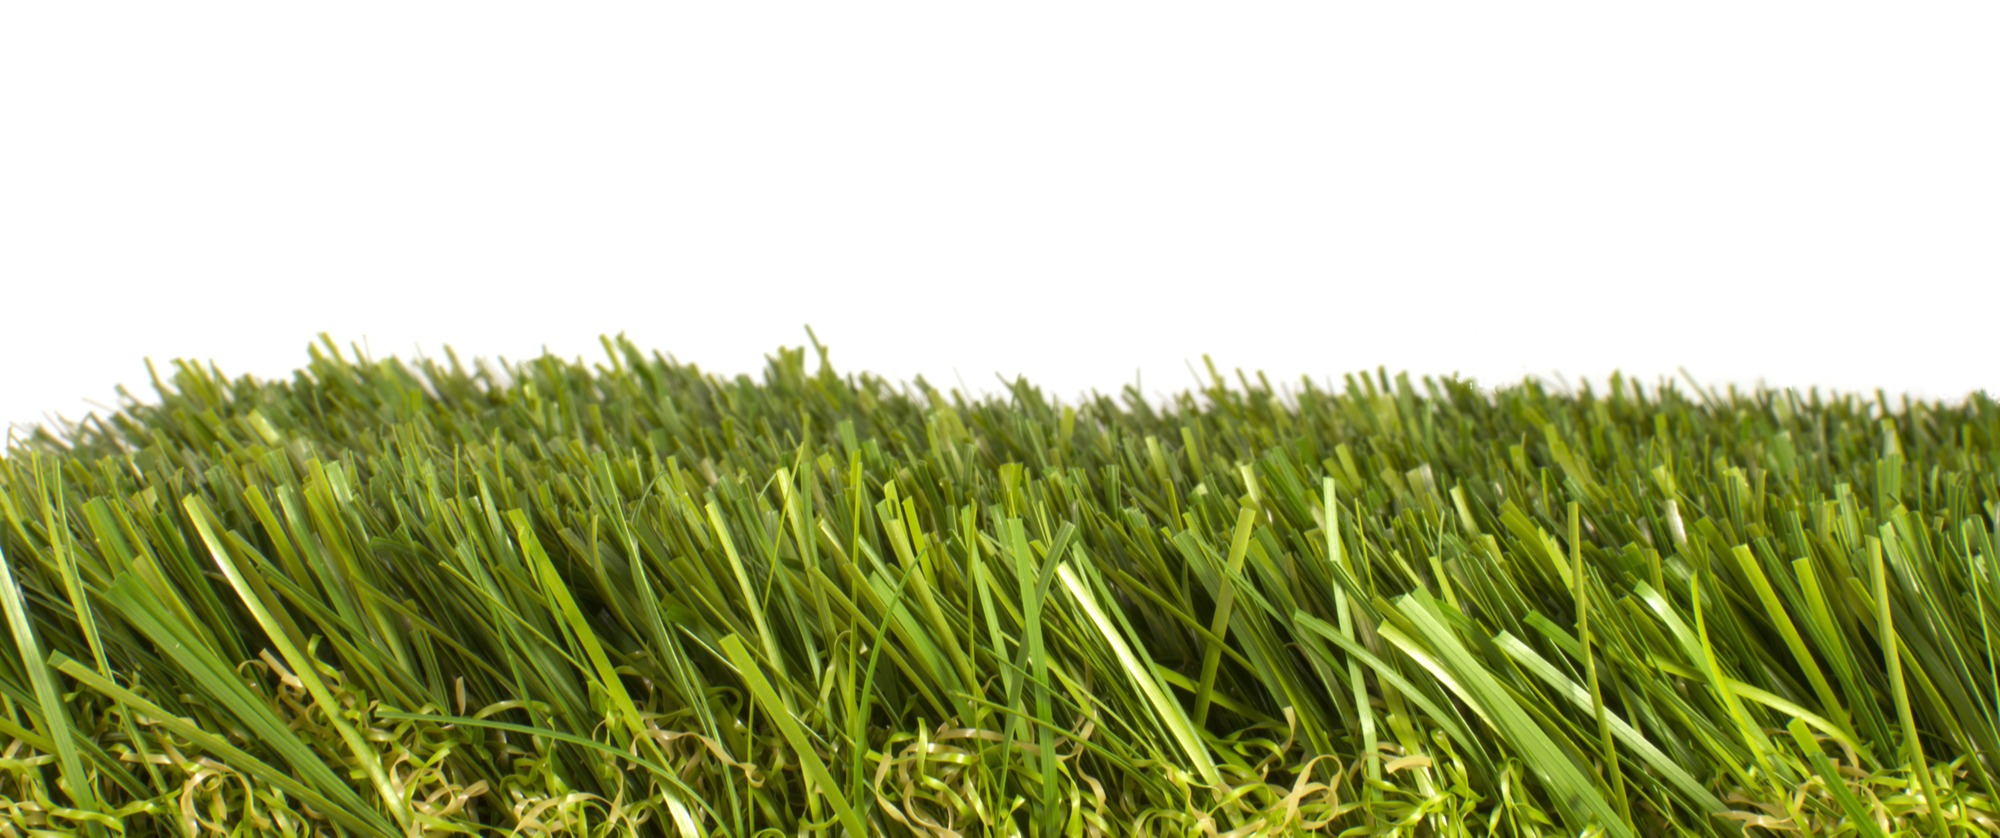 Does Artificial Grass Get Mold